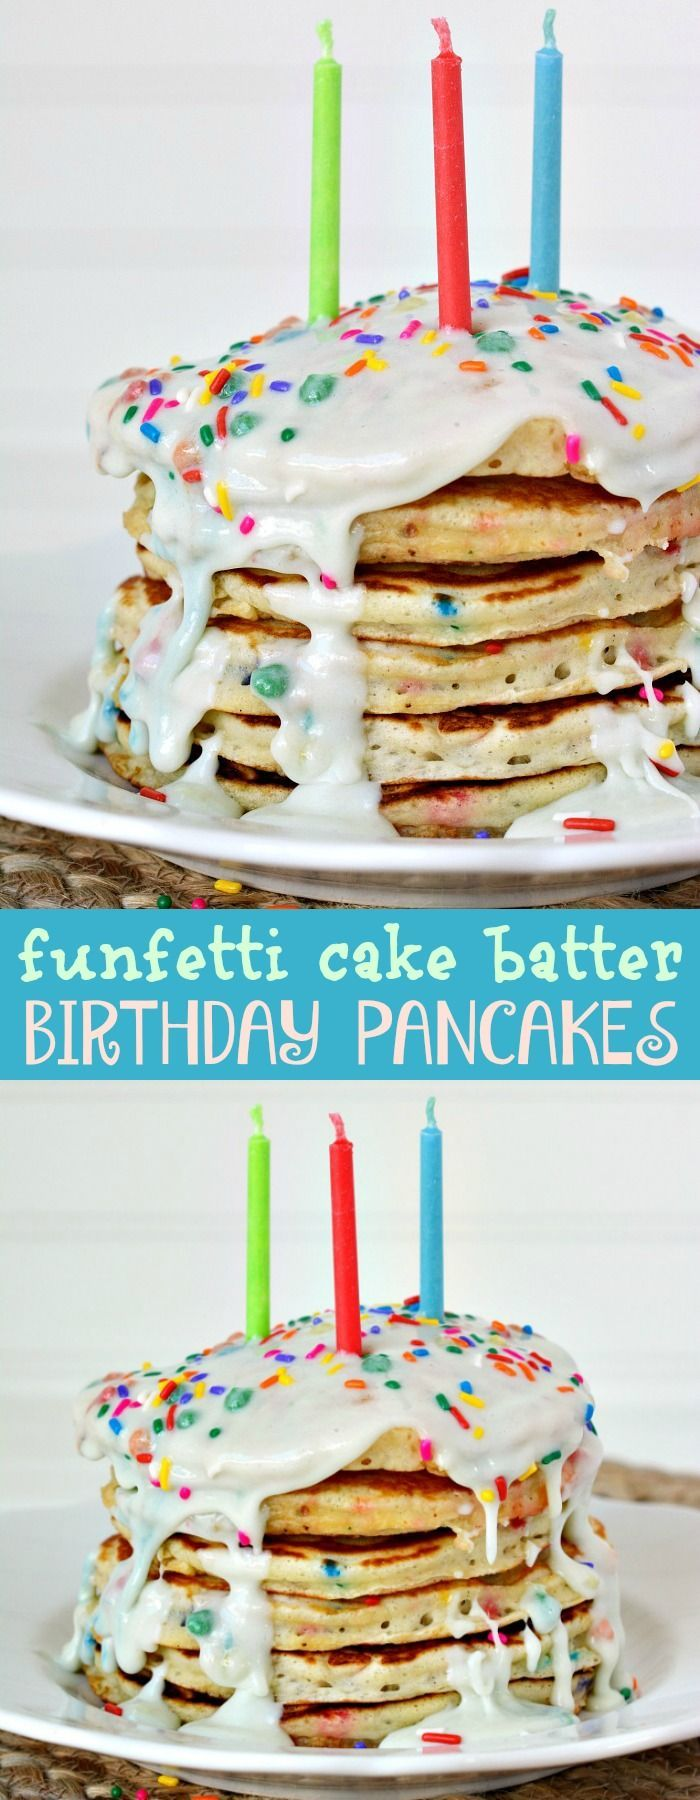 Funfetti Cake Batter Birthday Pancakes Recipe